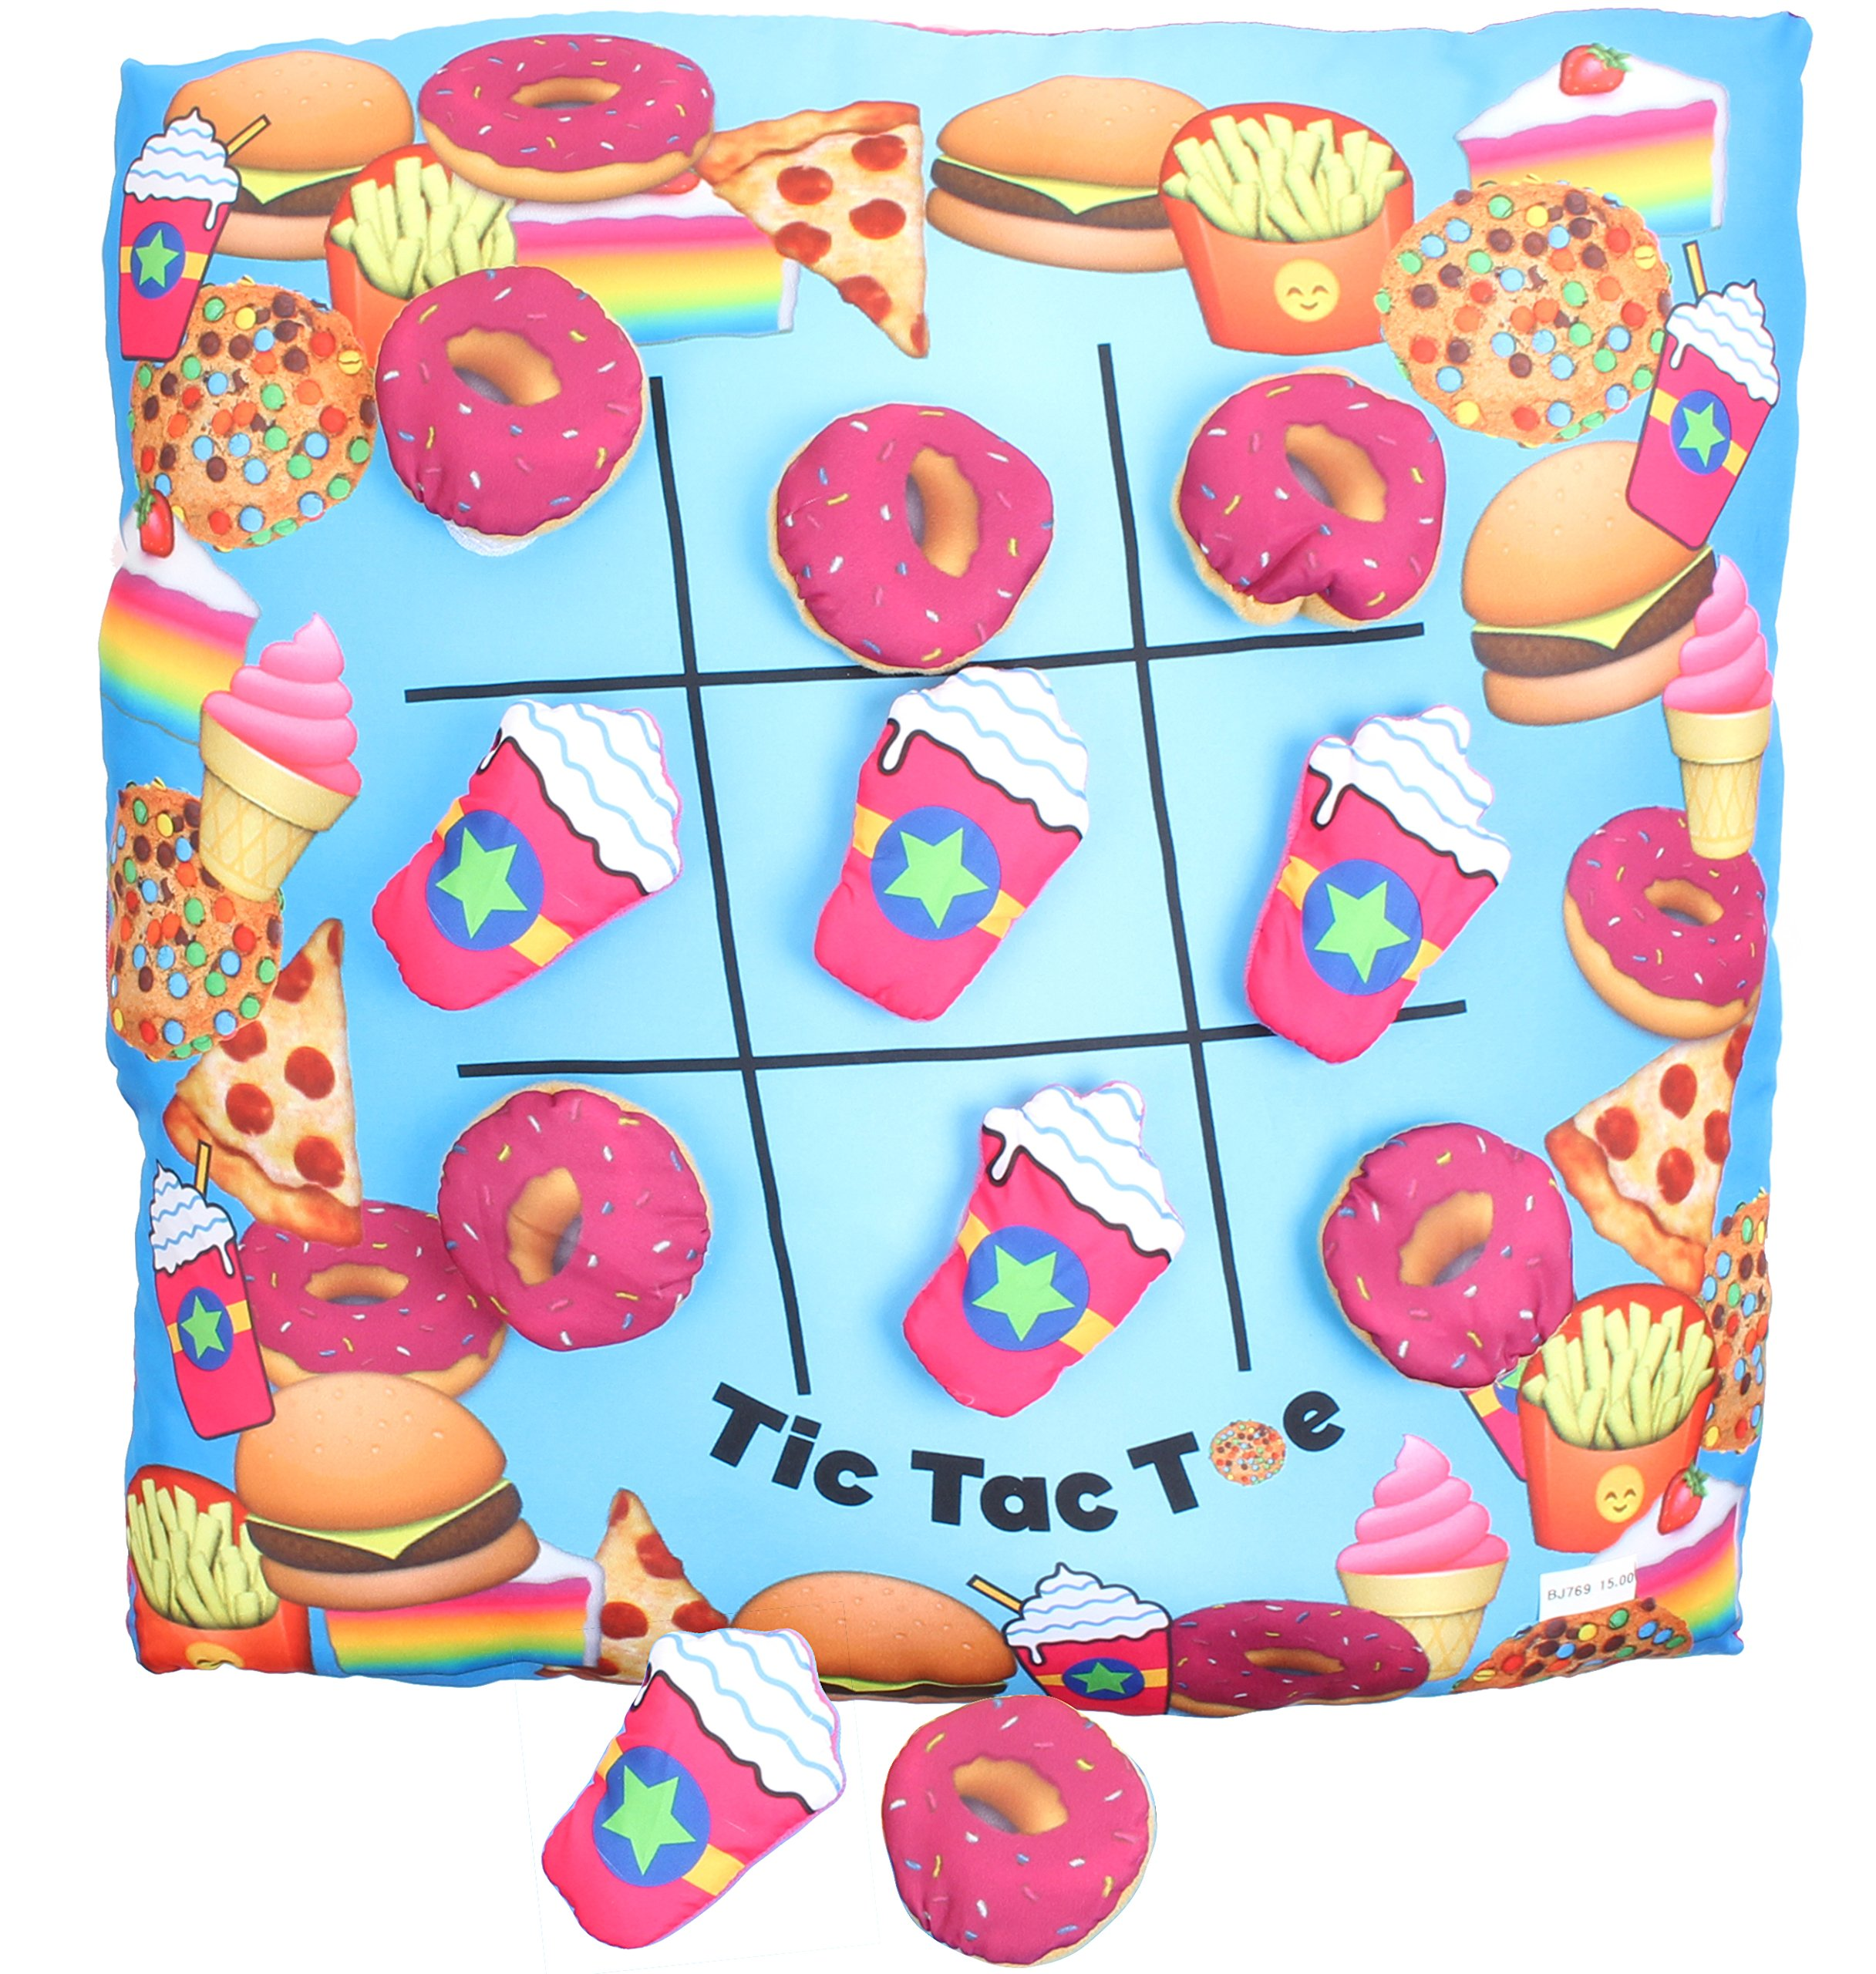 Tic Tac Toe Game Pillow the Velcro Donuts & Frap' Make for Hours of Fun!